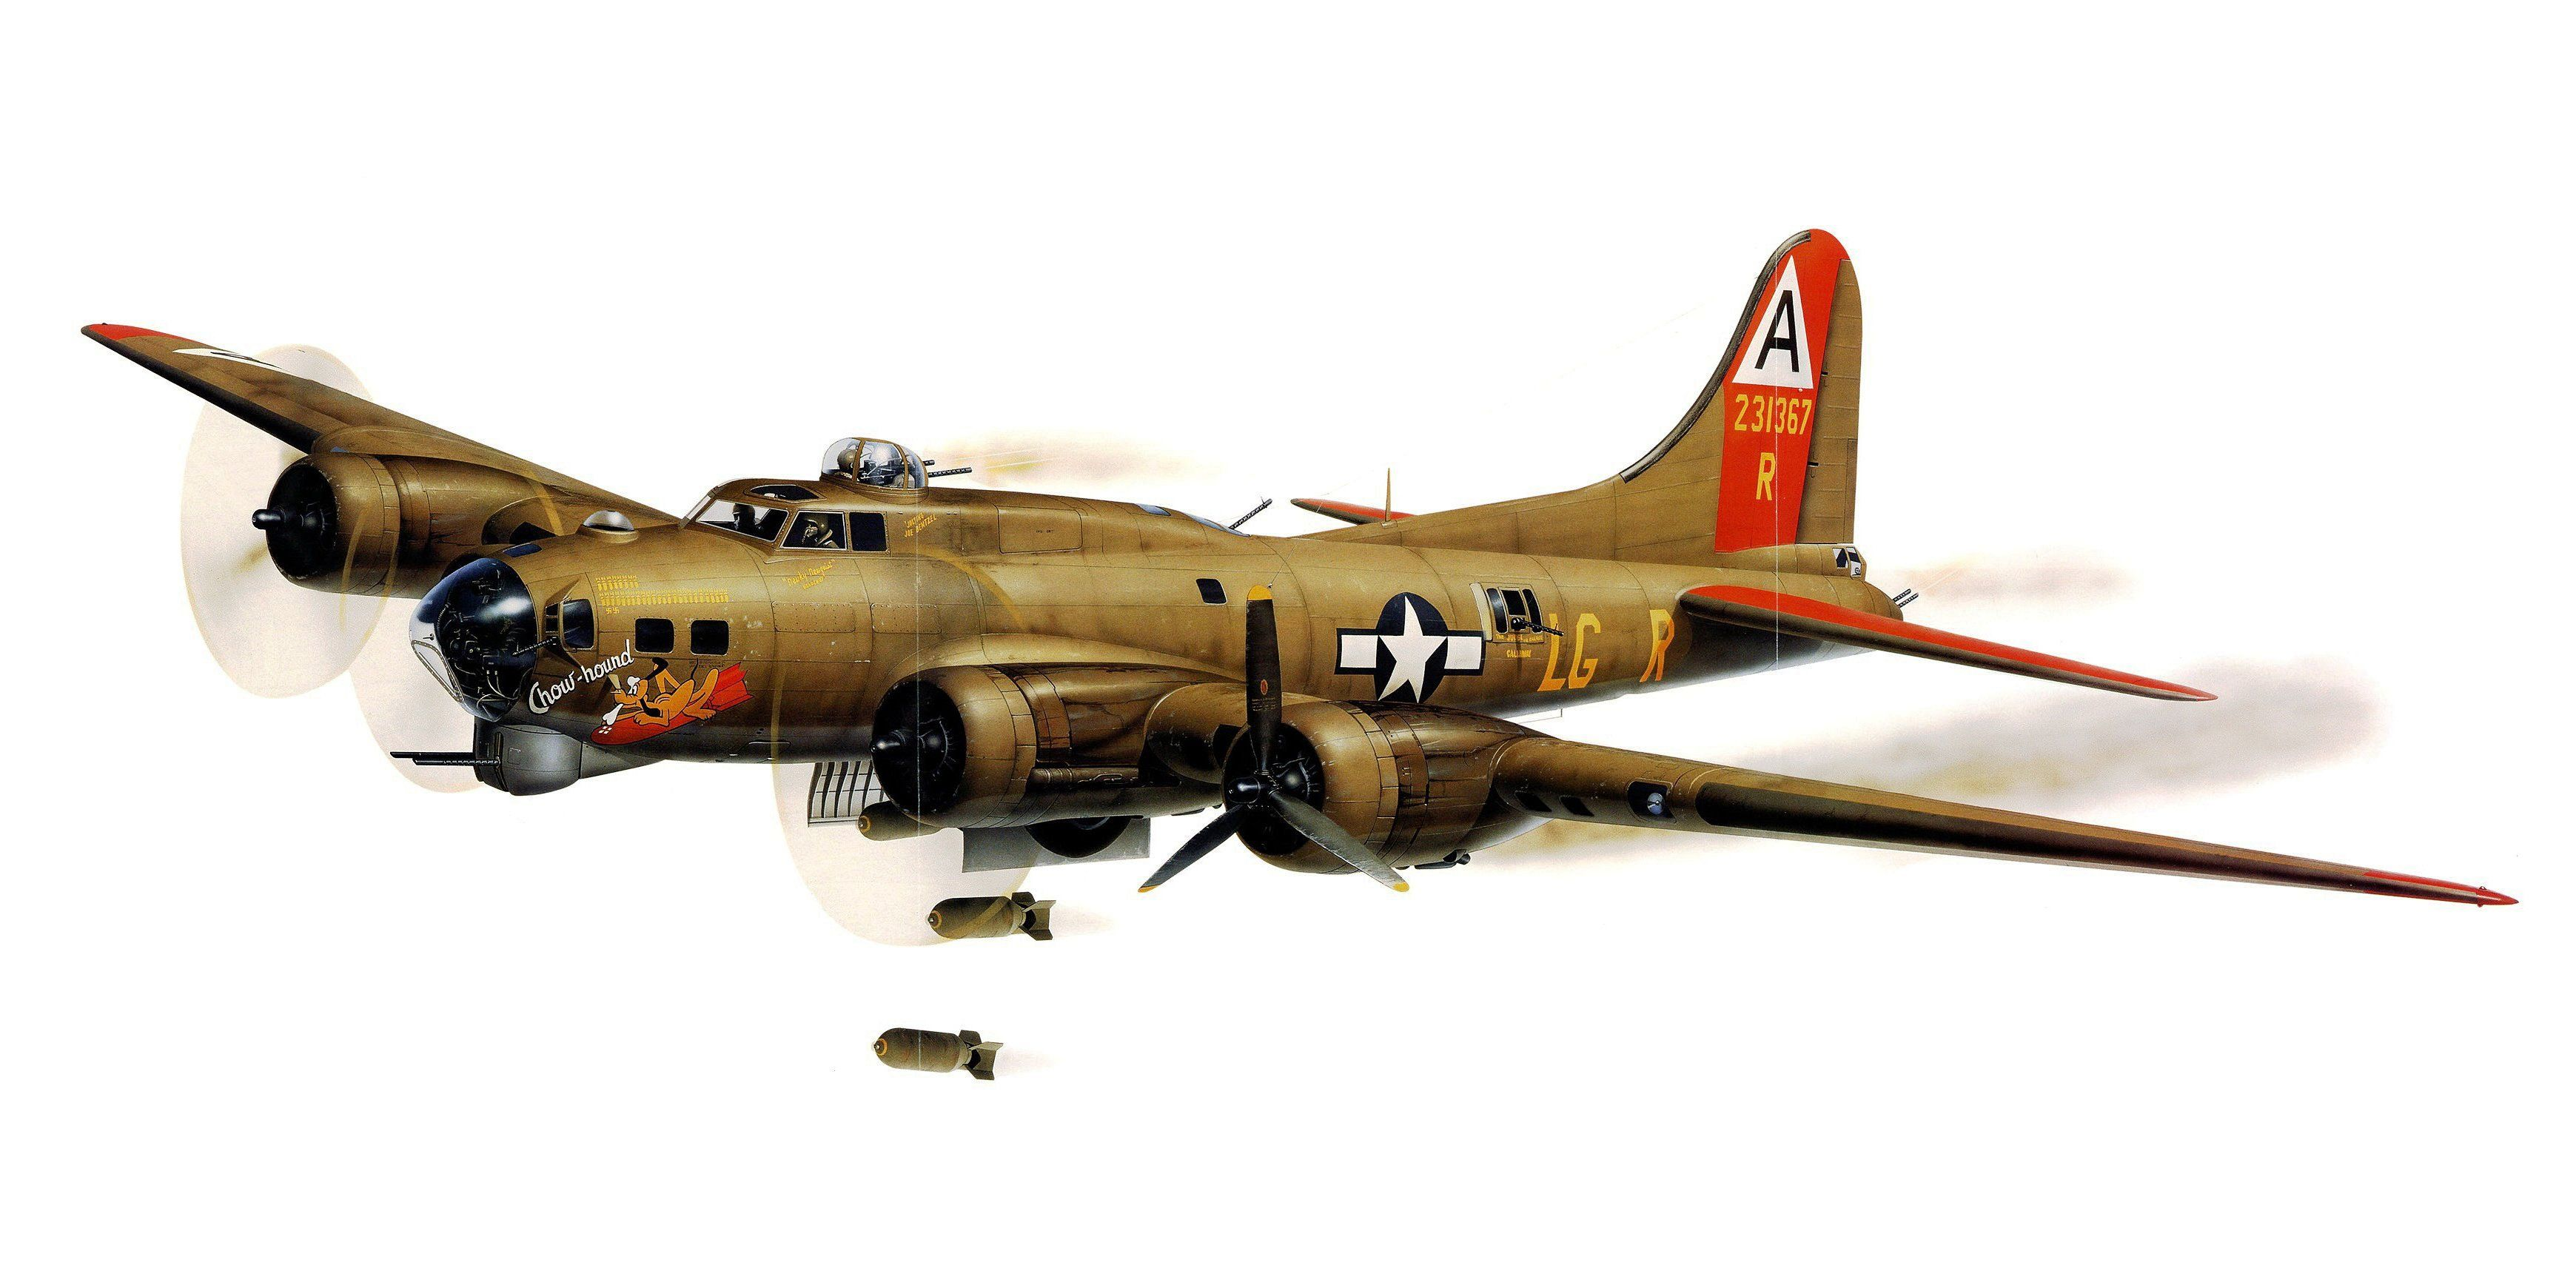 Boeing B-17G Flying Fortress 8th Air Force Aircraft Painting Aviation Art Print